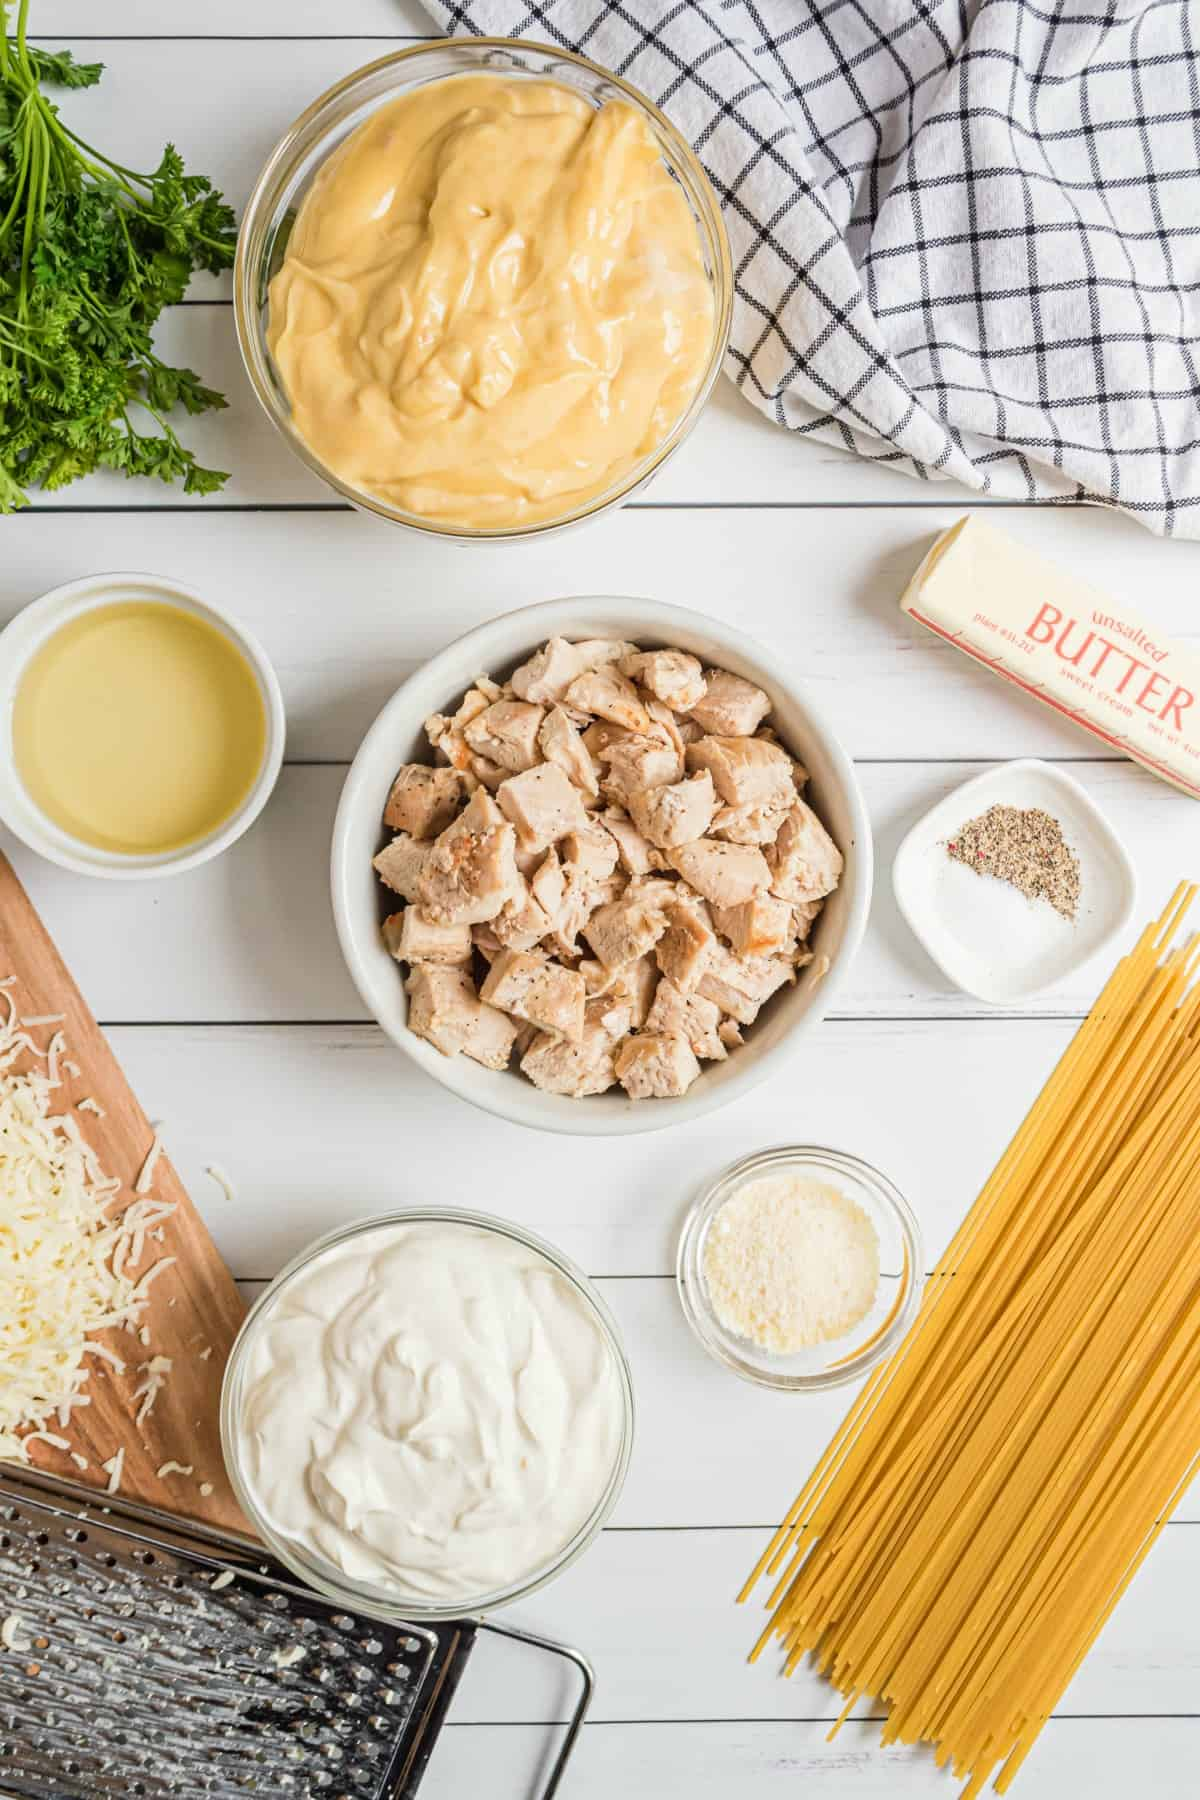 Ingredients you'll need to make chicken tetrazzini, including cooked chicken, pasta, cream of chicken soup and more.